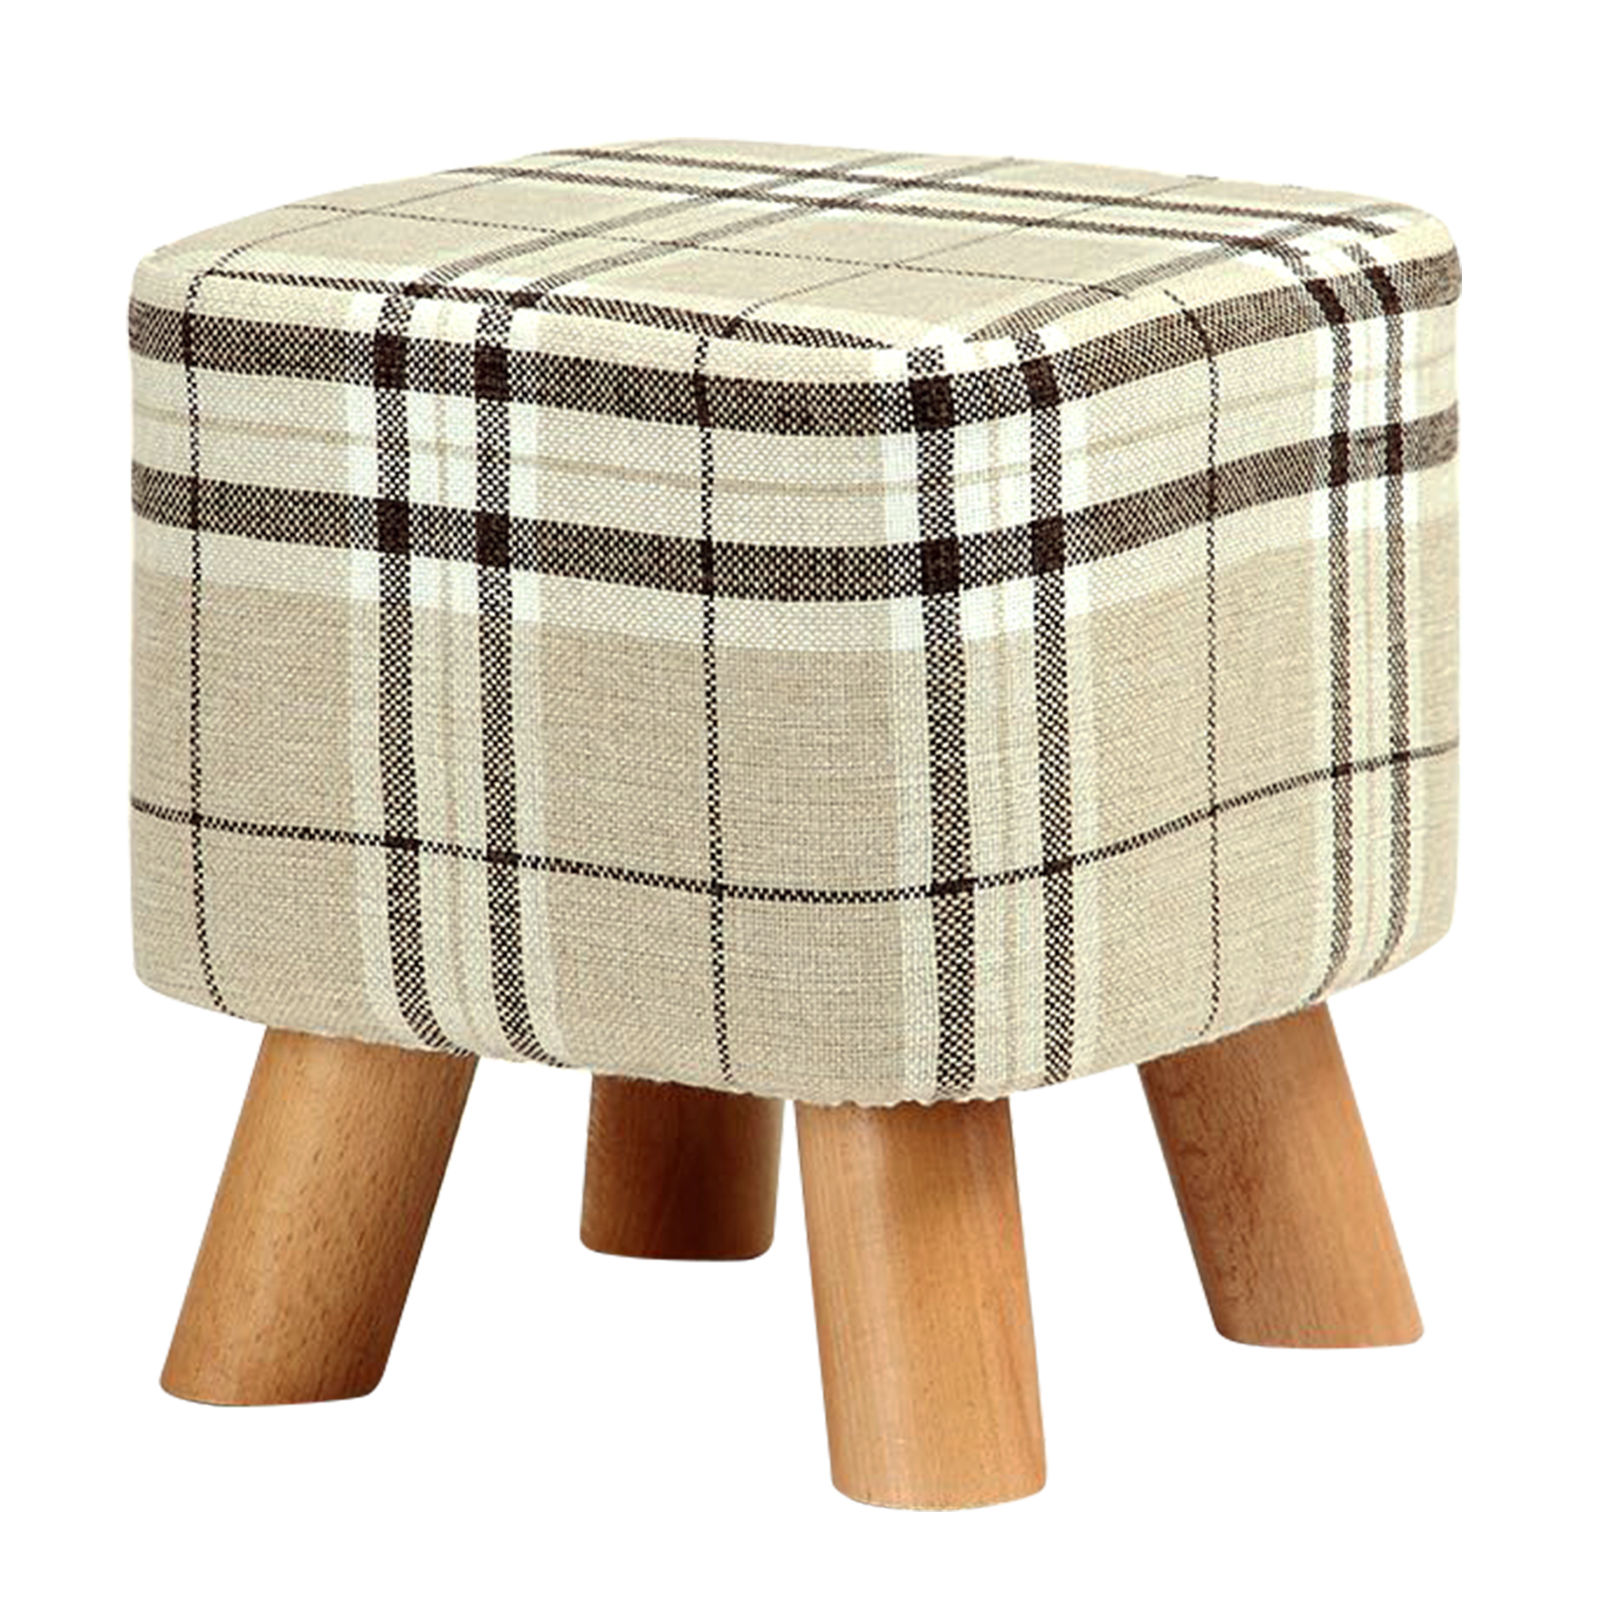 Modern Luxury Upholstered Footstool Pouffe Stool + Wooden Leg Pattern:Square Fabric:Big Checkered(4 Legs)Modern Luxury Upholstered Footstool Pouffe Stool + Wooden Leg Pattern:Square Fabric:Big Checkered(4 Legs)